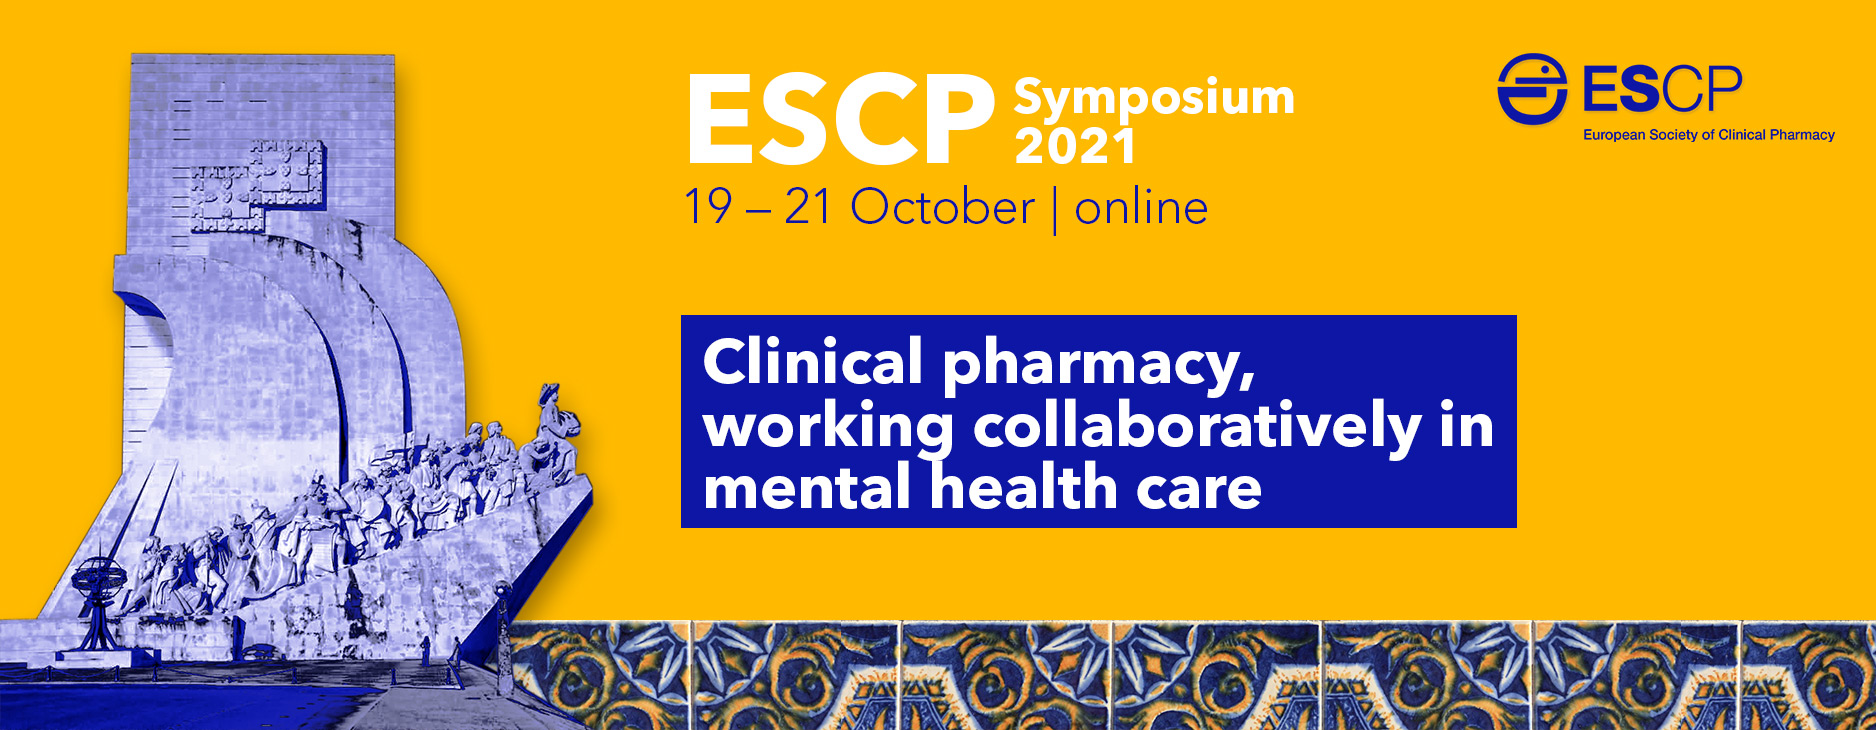 ESCP Virtual Symposium 2021